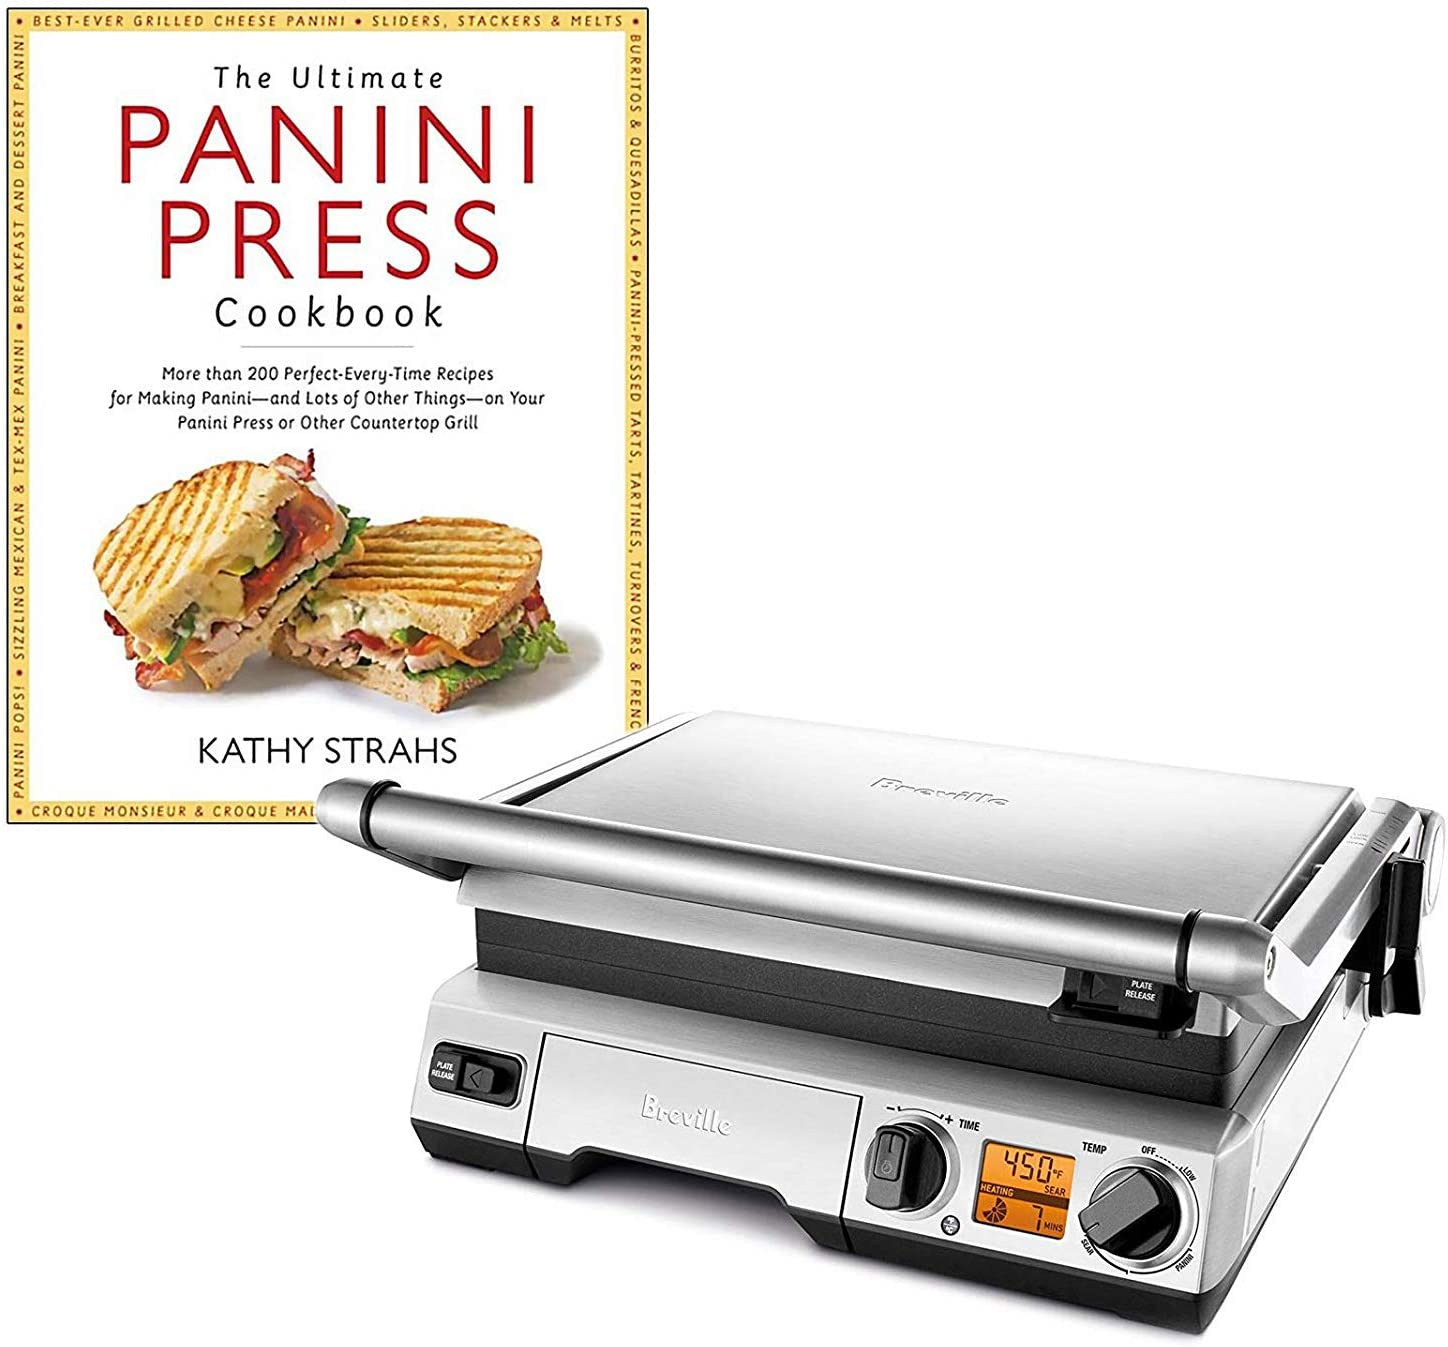 """Breville BGR820XL Smart Grill Panini Press Bundle with""""The Ultimate Panini Press Cookbook More Than 200 Recipes"""" Cookbook - Stainless Steel"""